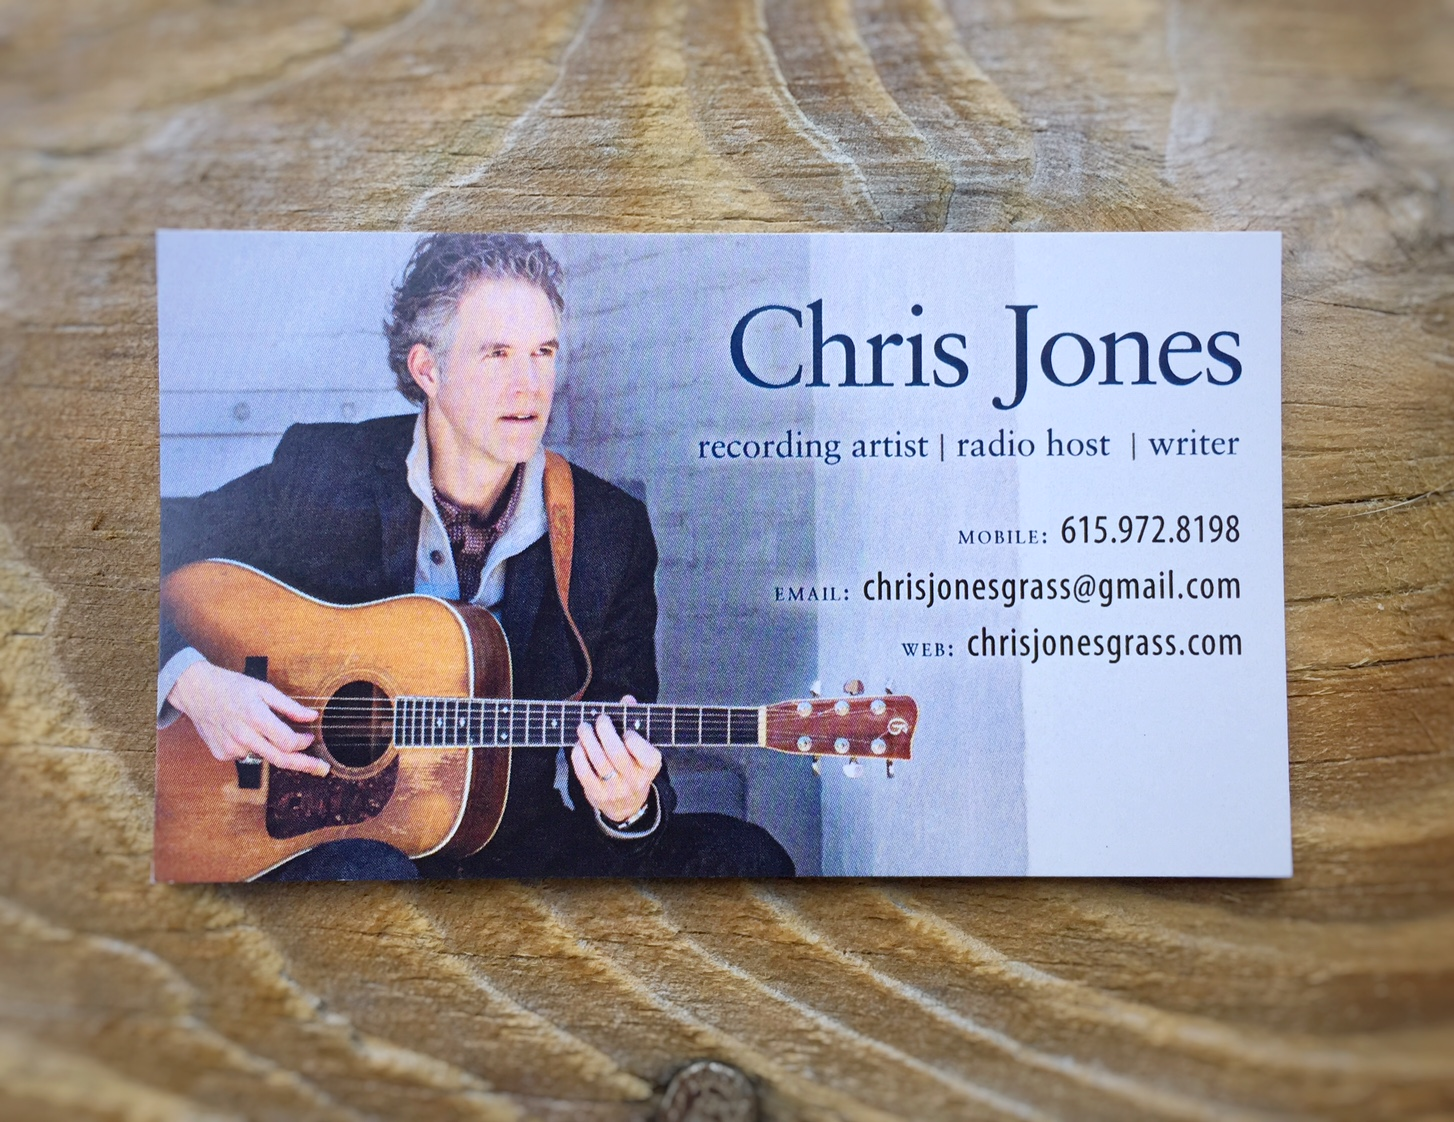 This business card for bluegrass musician Chris Jones needed to be done in a hurry. We produced the artwork in two-and-a-half hours from the time he called me to time it went off to the printers. My miraculous contacts at Printsource in Charlottesville, VA had the cards beautifully printed and delivered on the doorstep in just two business days, and gave us an amazing price. A good relationship with a professional printer is worth a fortune!